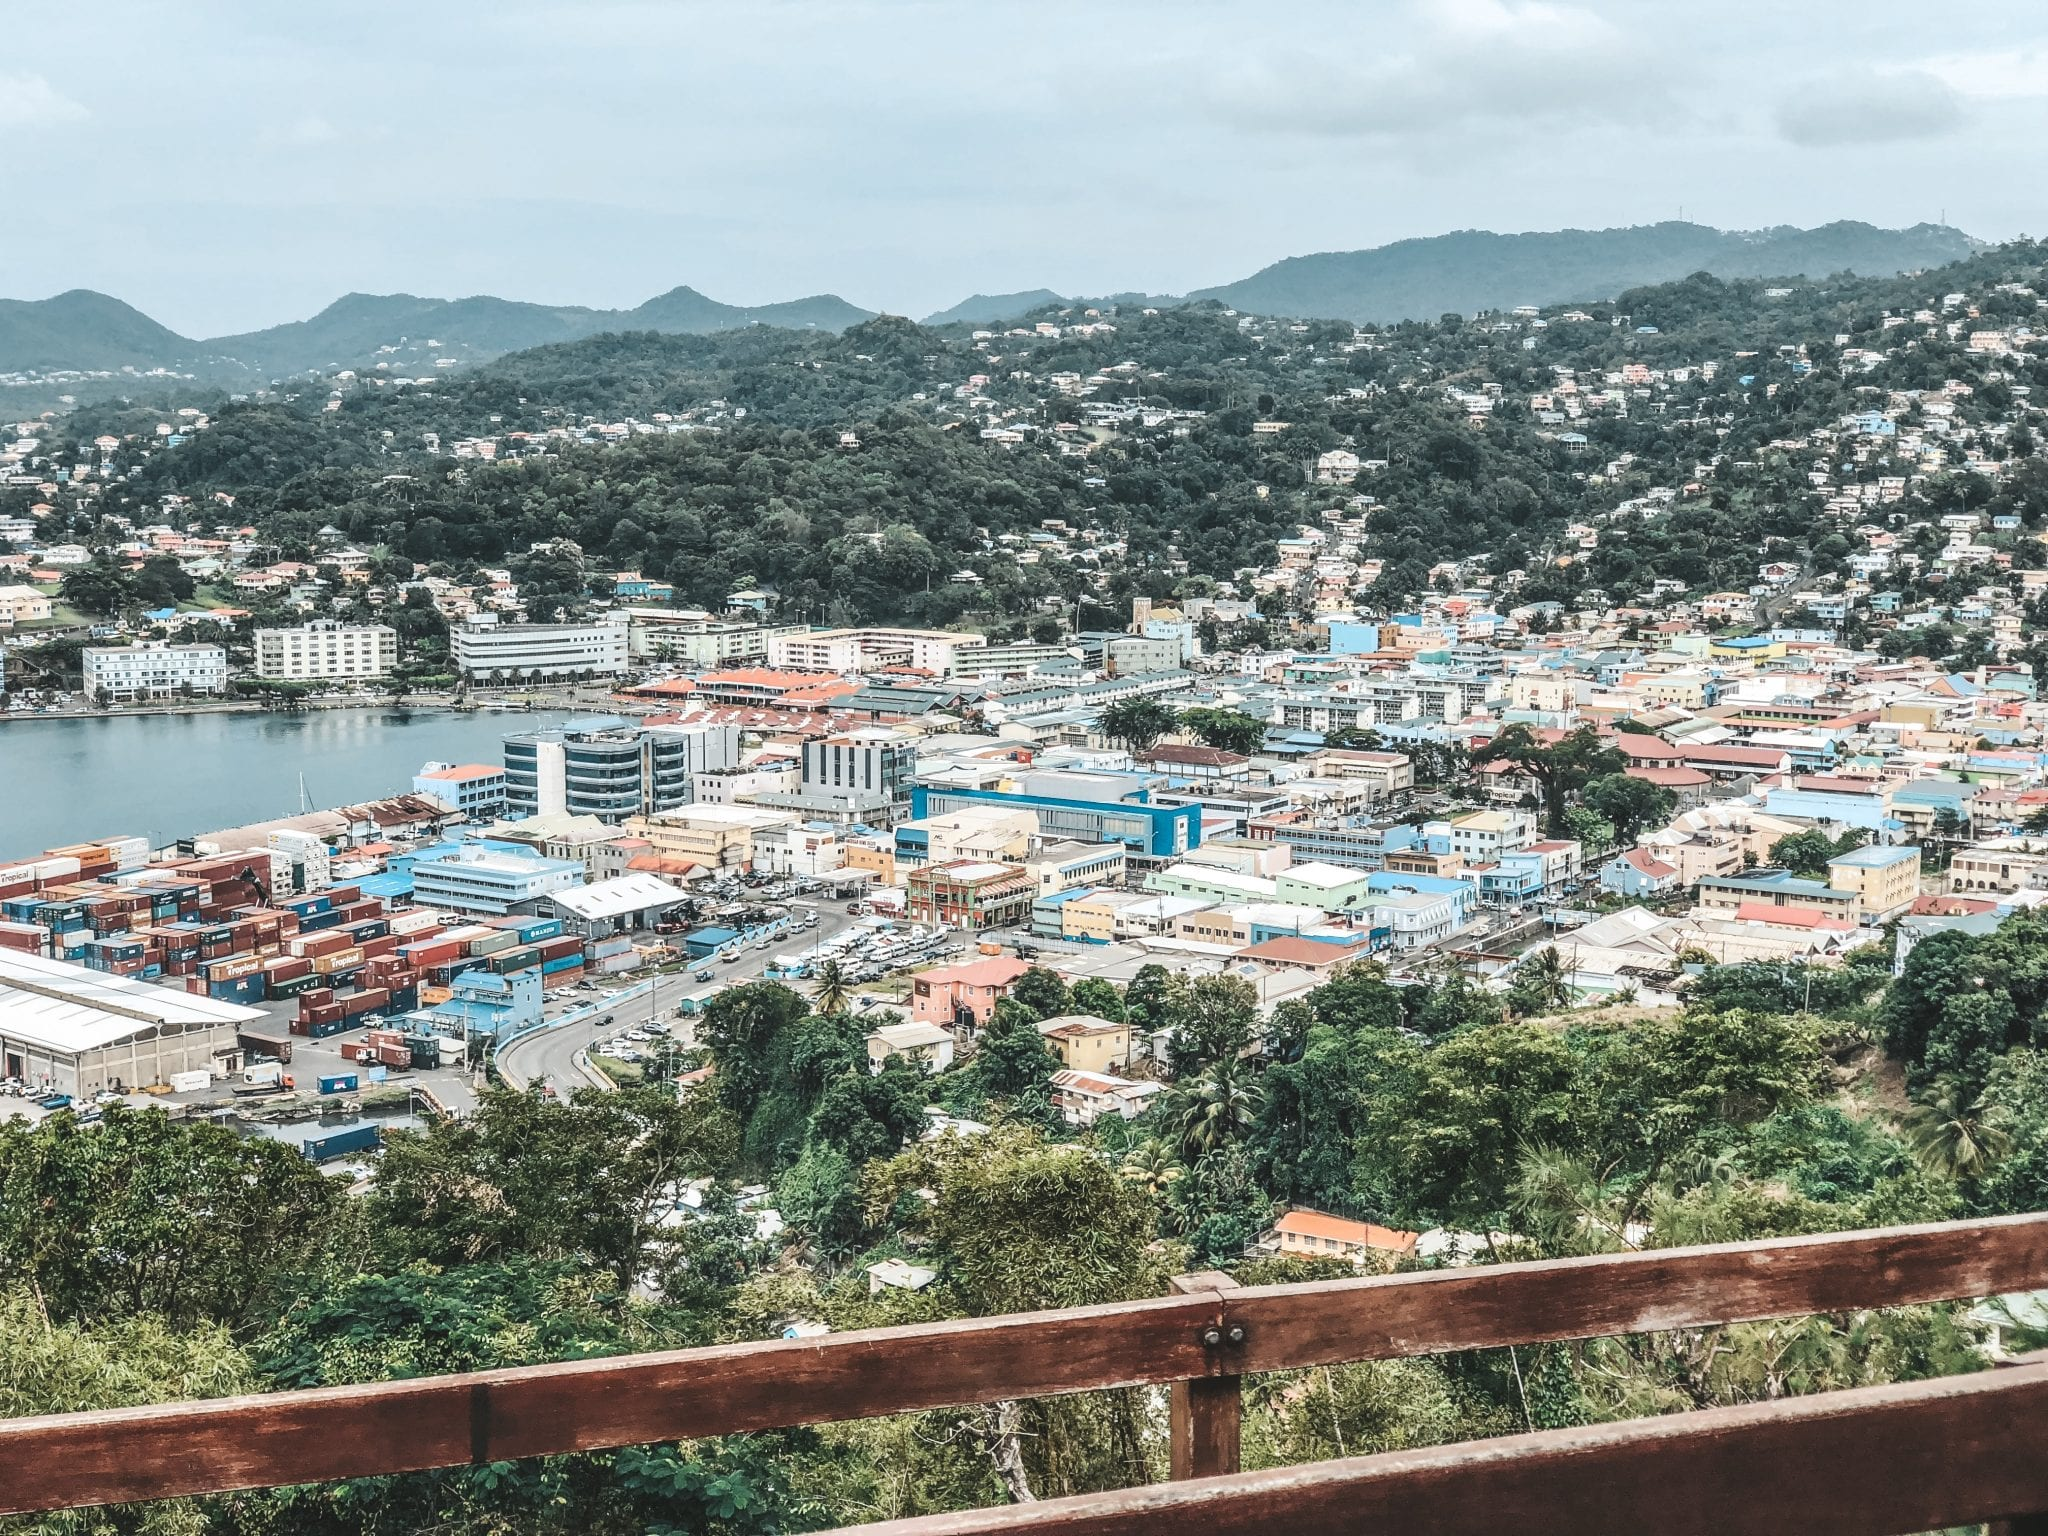 Castries St. Lucia is the capital